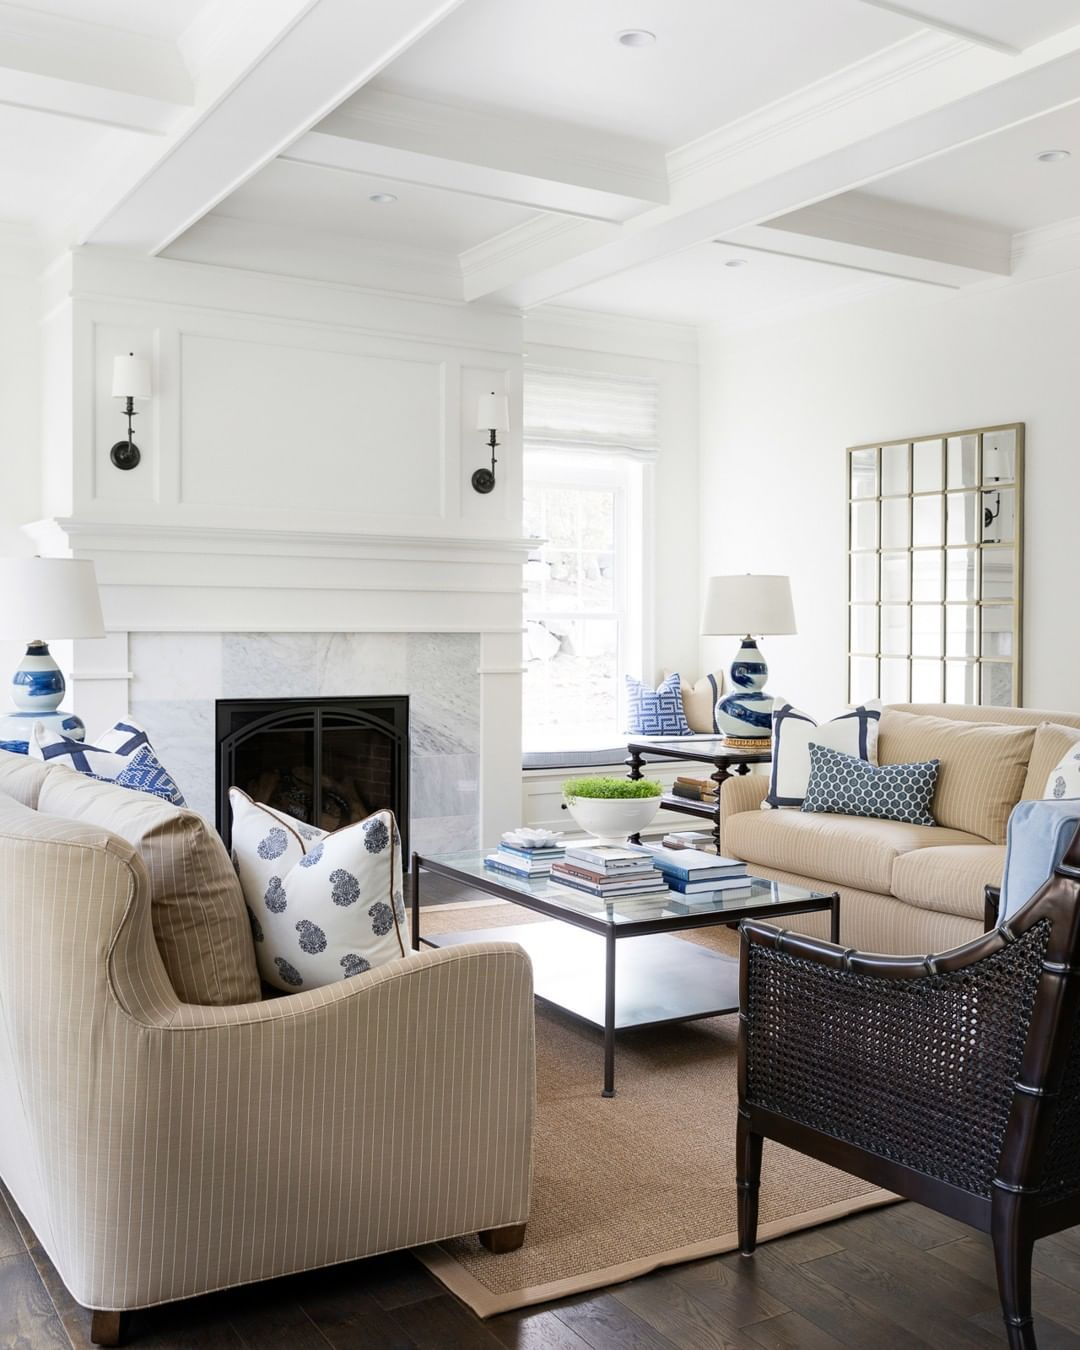 Great Room Furniture: The Great Room Was Designed With The Intention Of A More